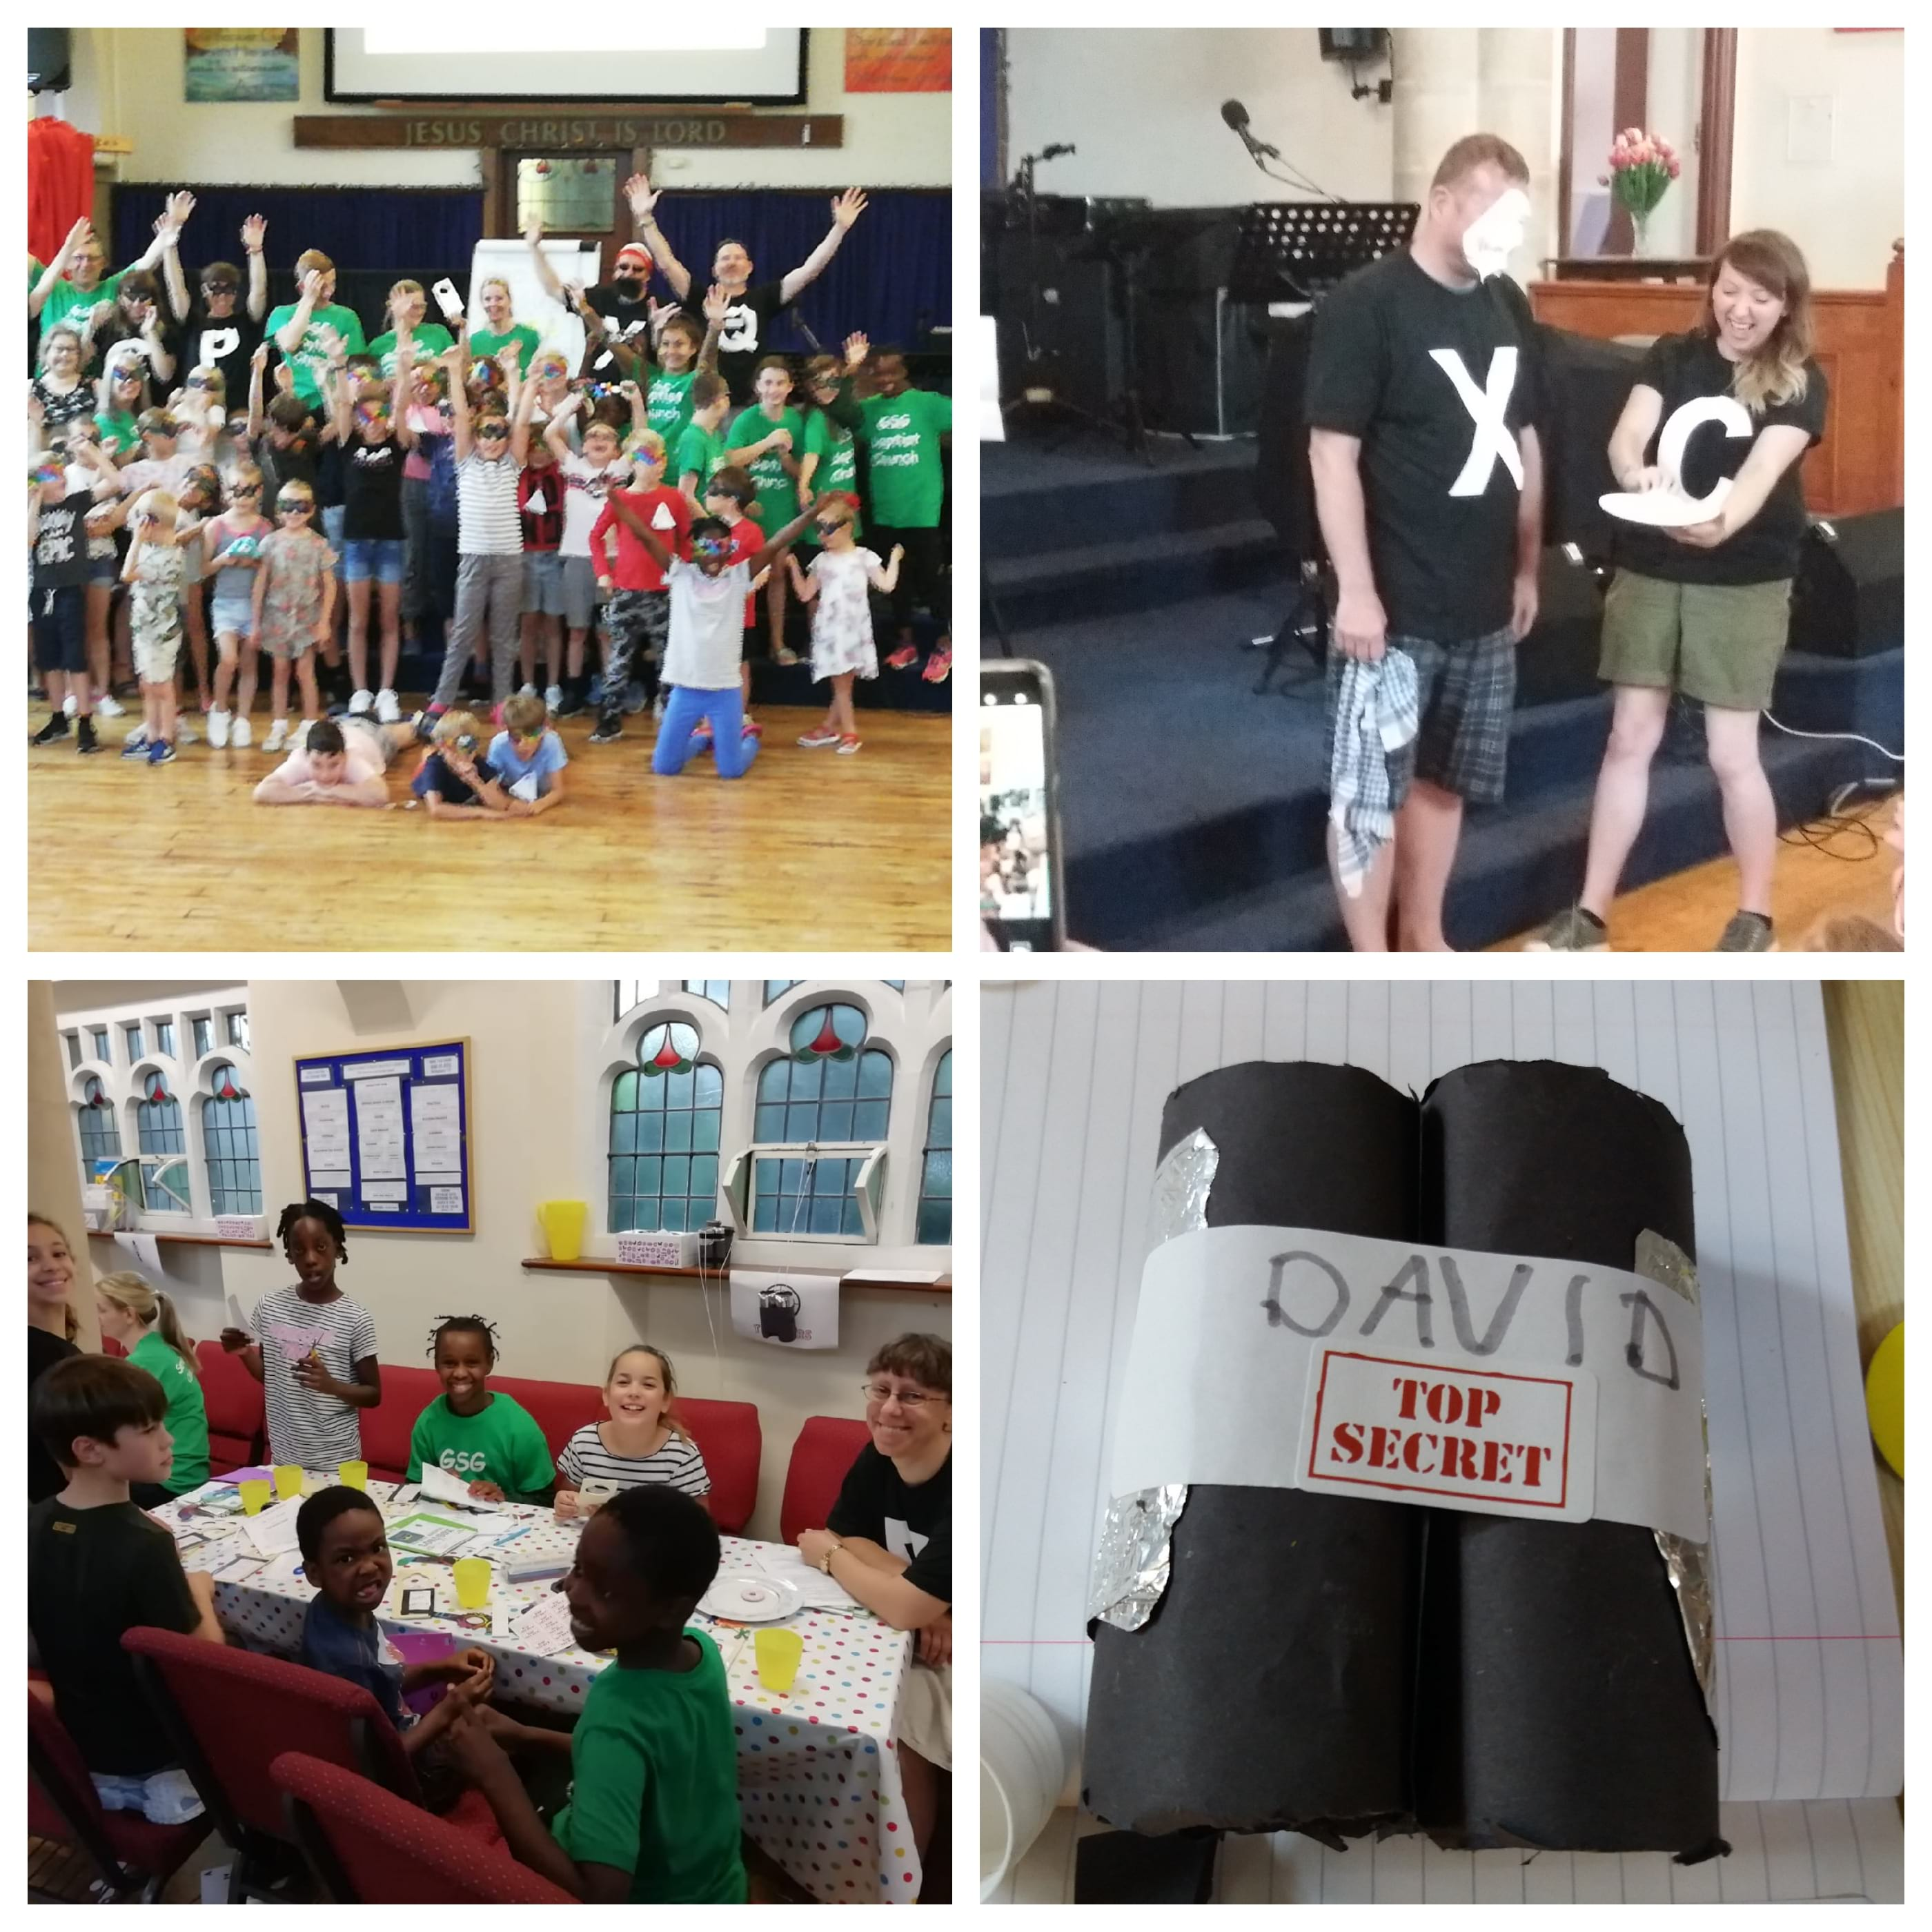 Who is JESUS? was the question at our children's holiday club on 24th, 25th and 26th July. The children were trained at Mission Control as secret agents, to ASK, SEEK and KNOCK. There were games, crafts, songs, puppets, puzzles, exploding clues and more!